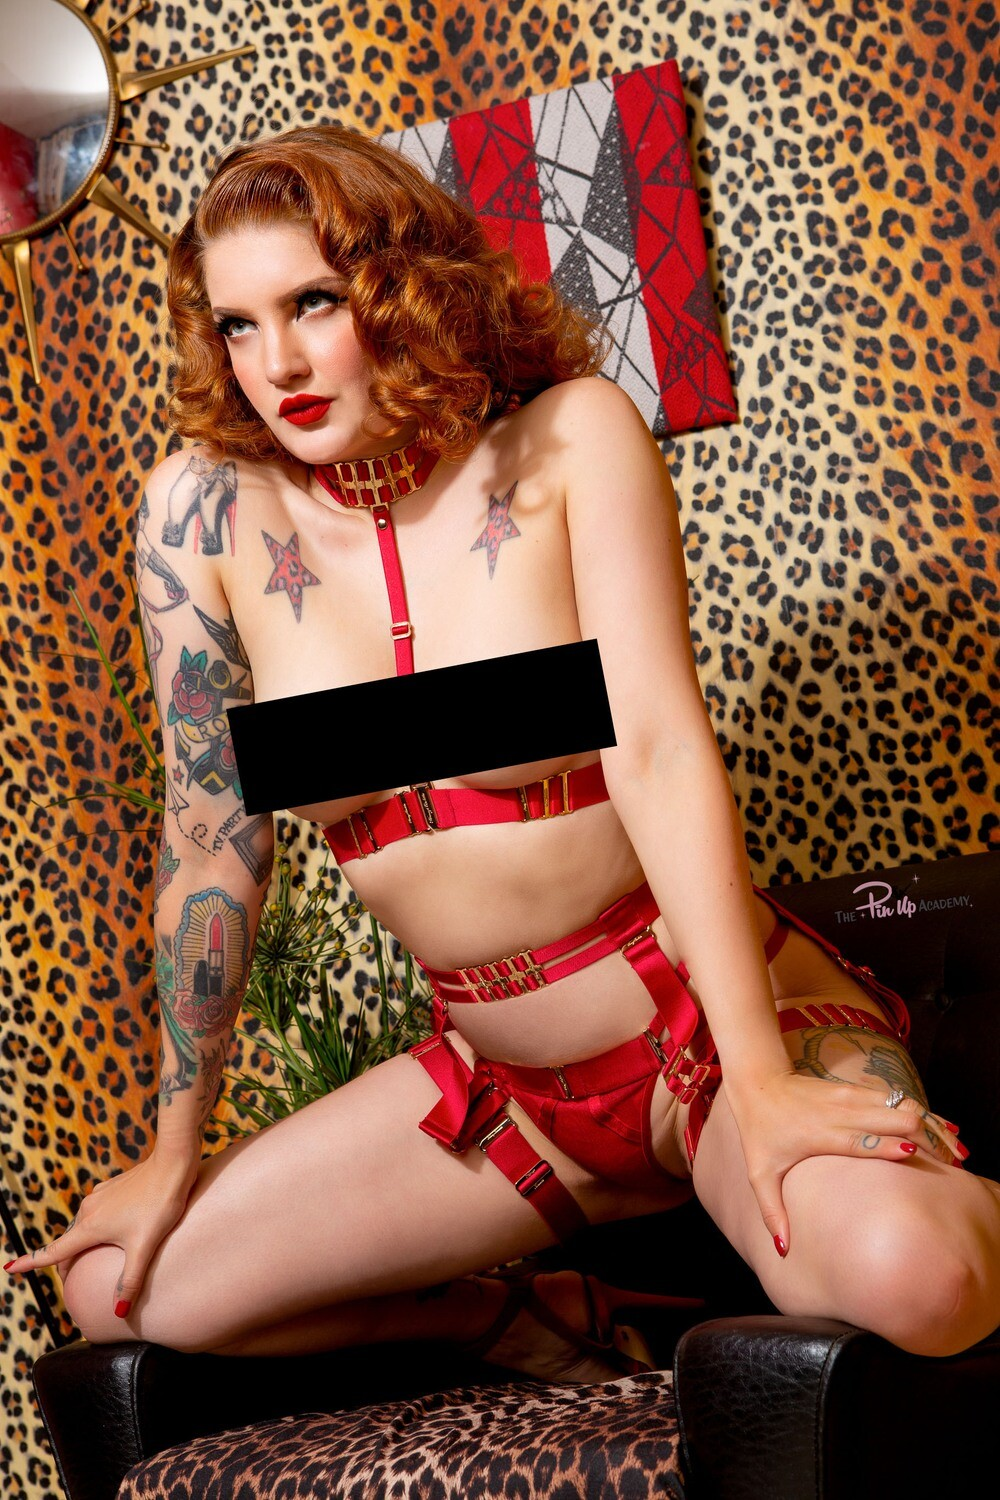 Millie Dollar Red set